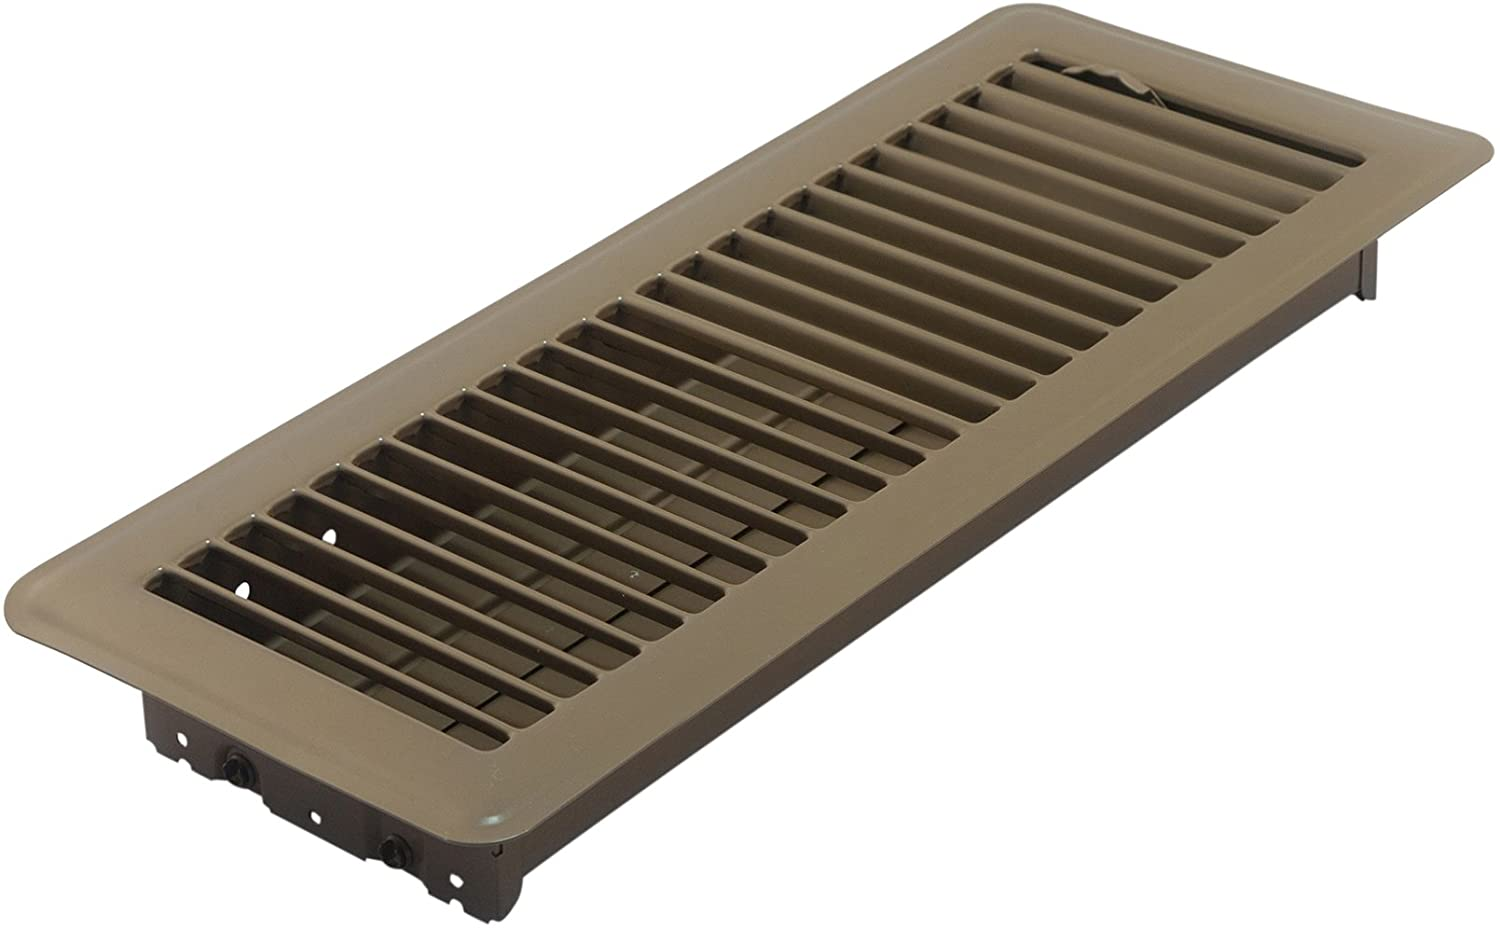 Amazon.com: Accord ABFRBR412 Floor Register With Louvered Design, 4-Inch X 12-Inch(Duct Opening Measurements), Brown: Home Improvement